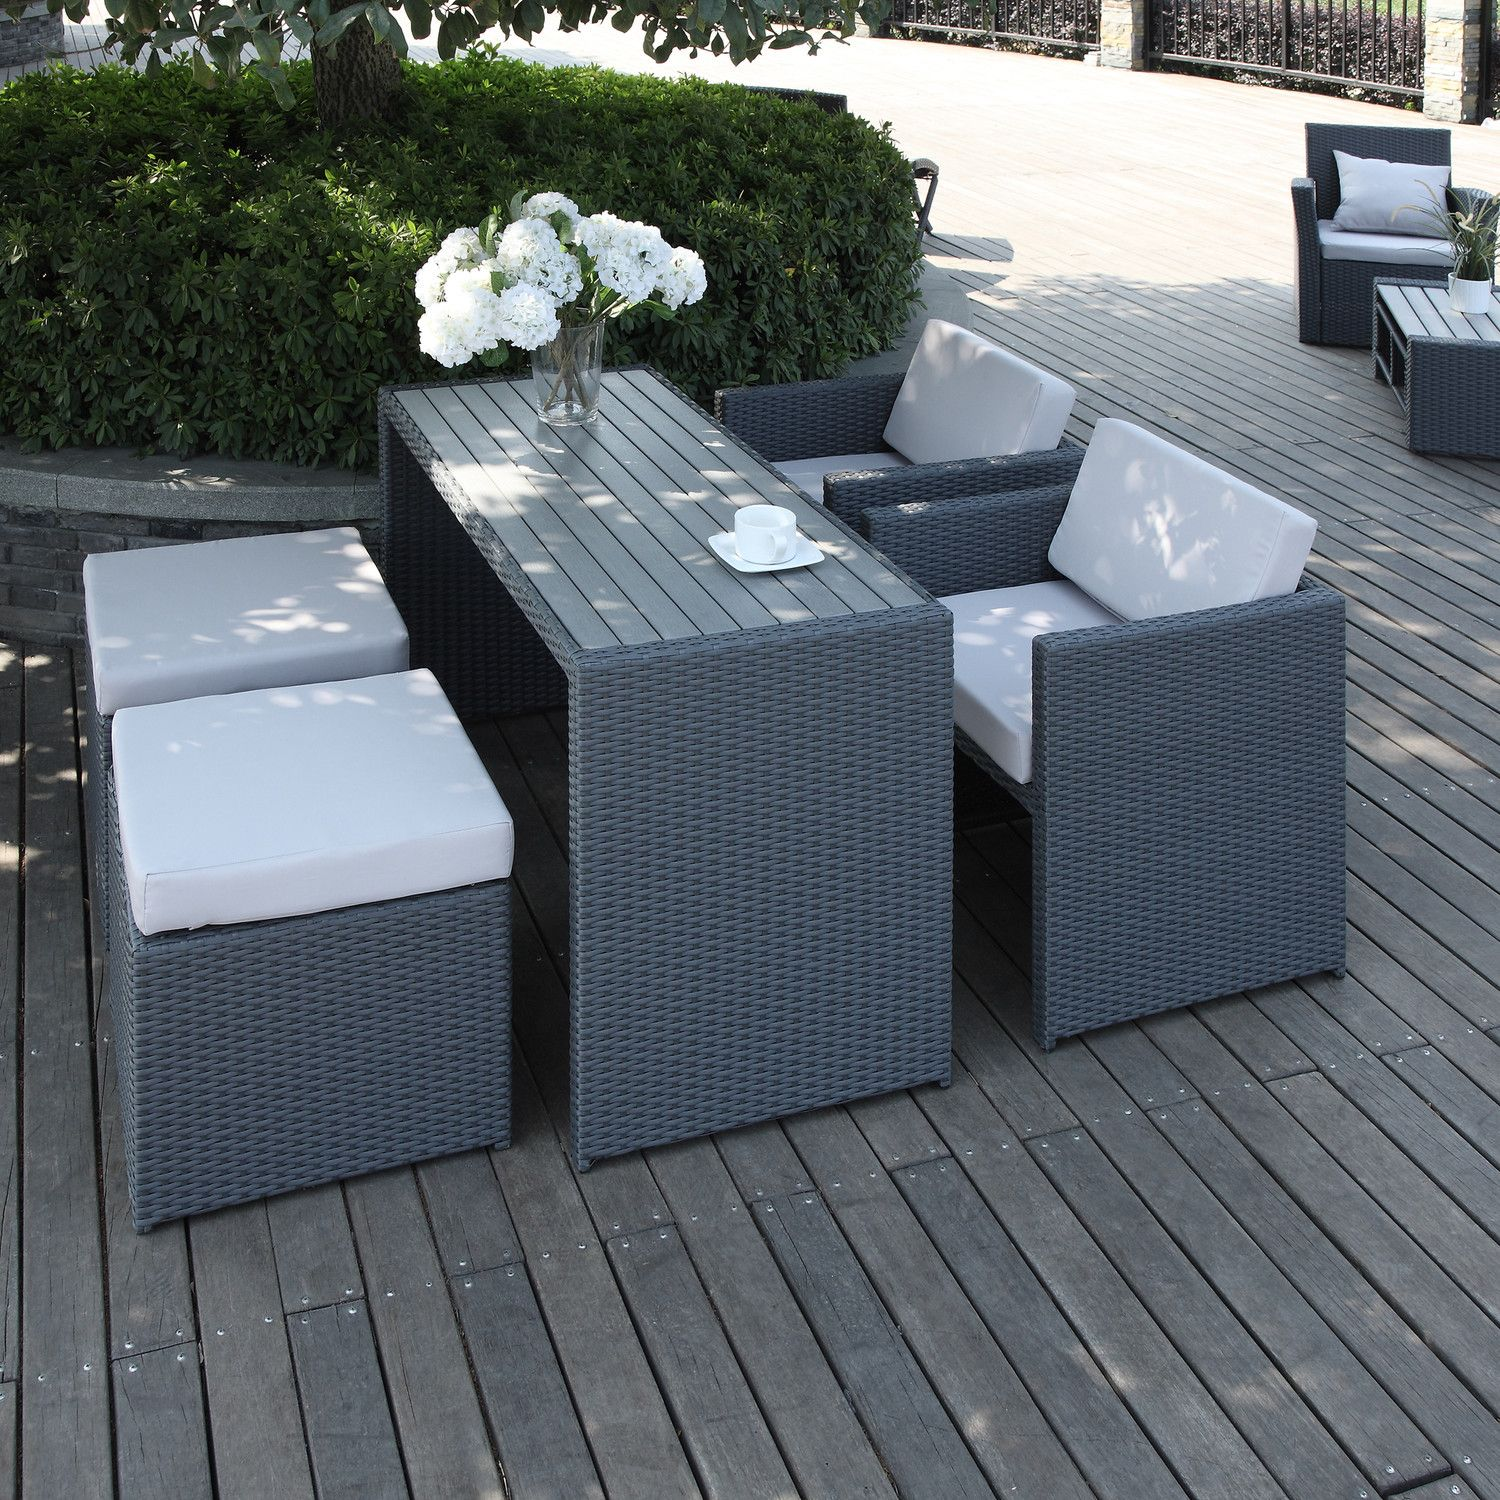 Black Resin Wicker Outdoor Furniture Sectional Sofa Set - Blue ...